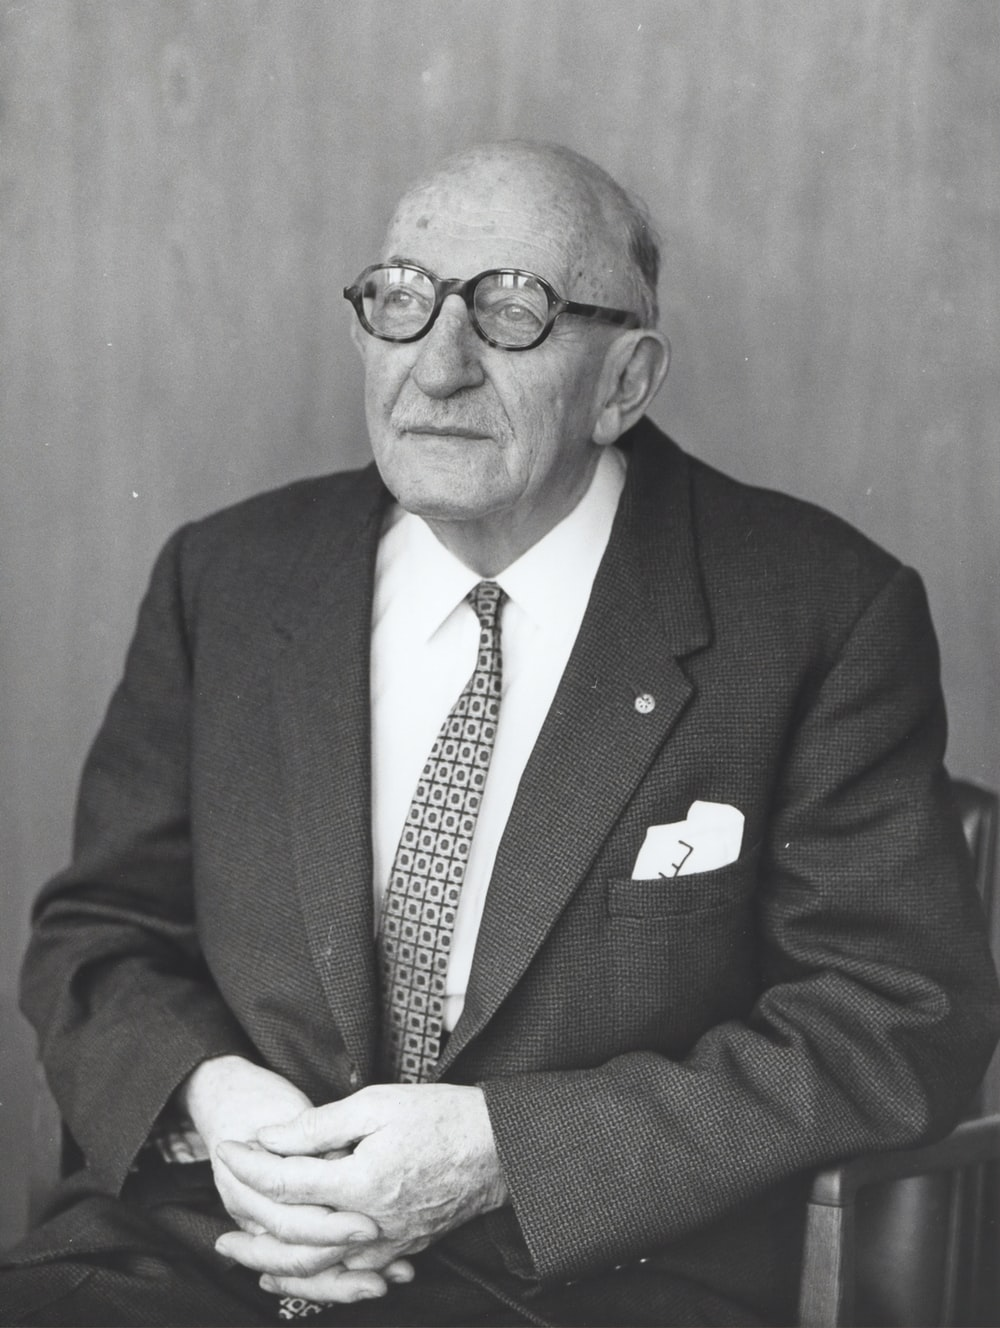 man wearing suit jacket and eyeglasses